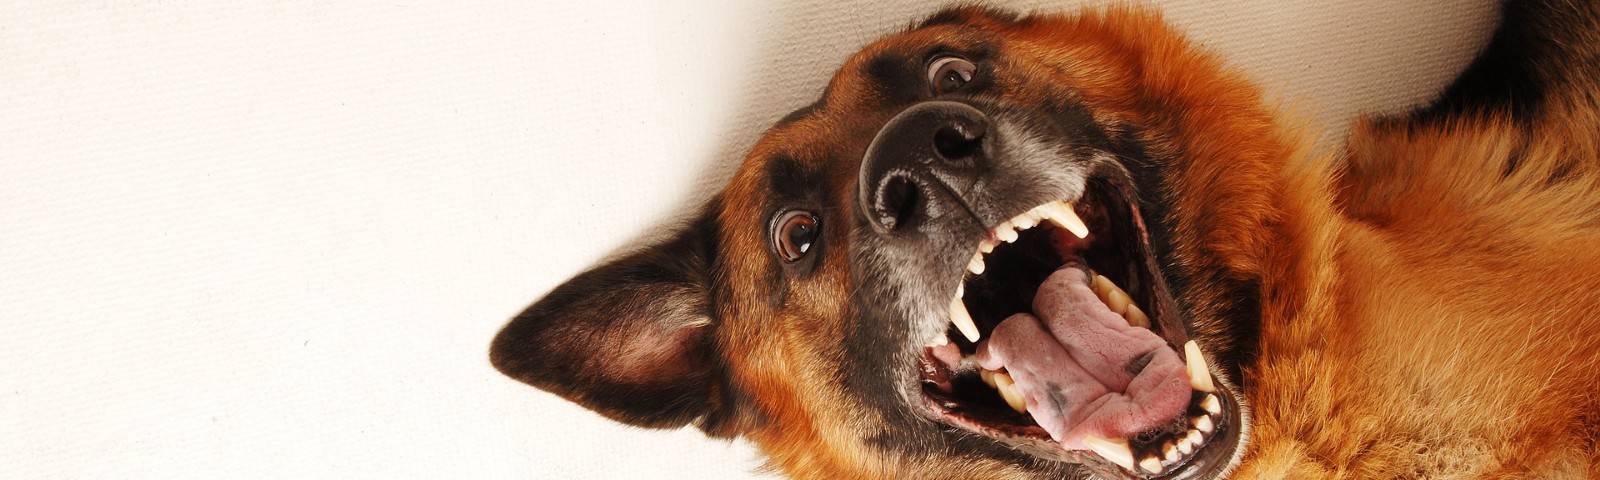 Straight to hell—Photo of smiling dog